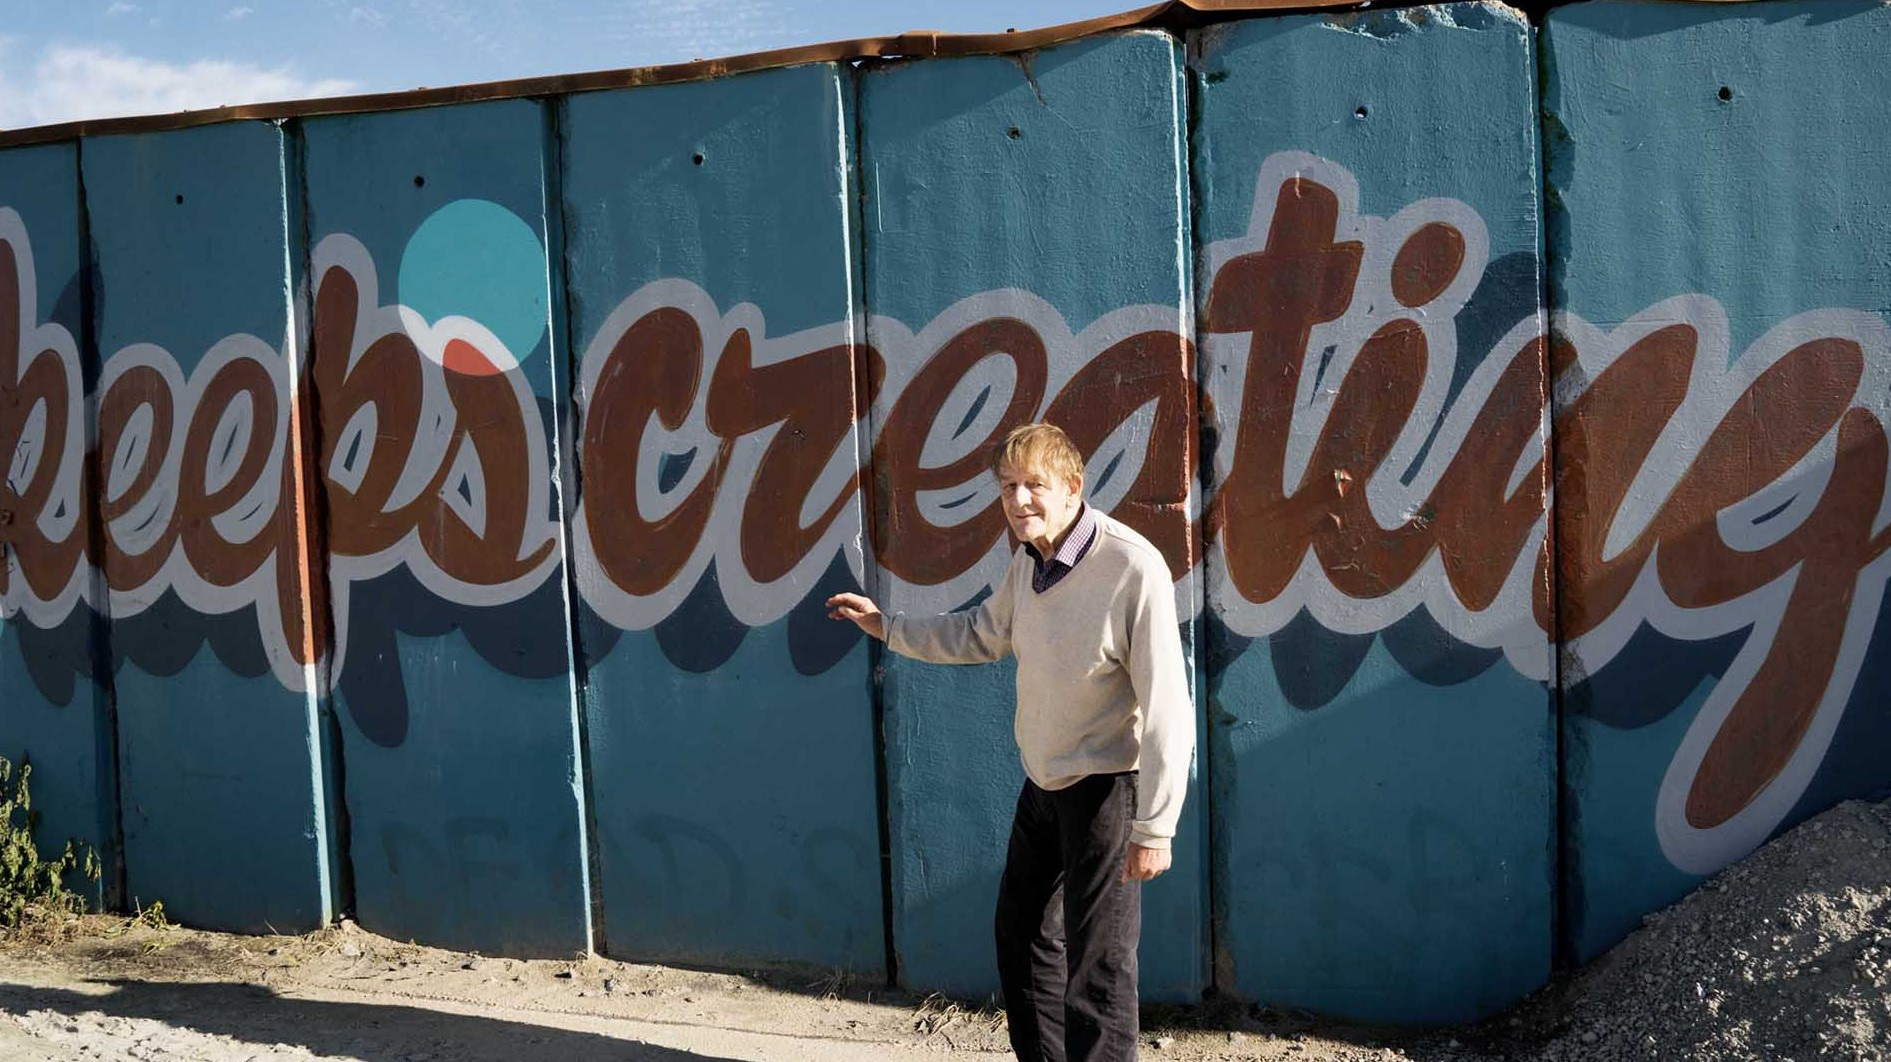 Per Nørgård in front of a mural reading 'keeps creating'